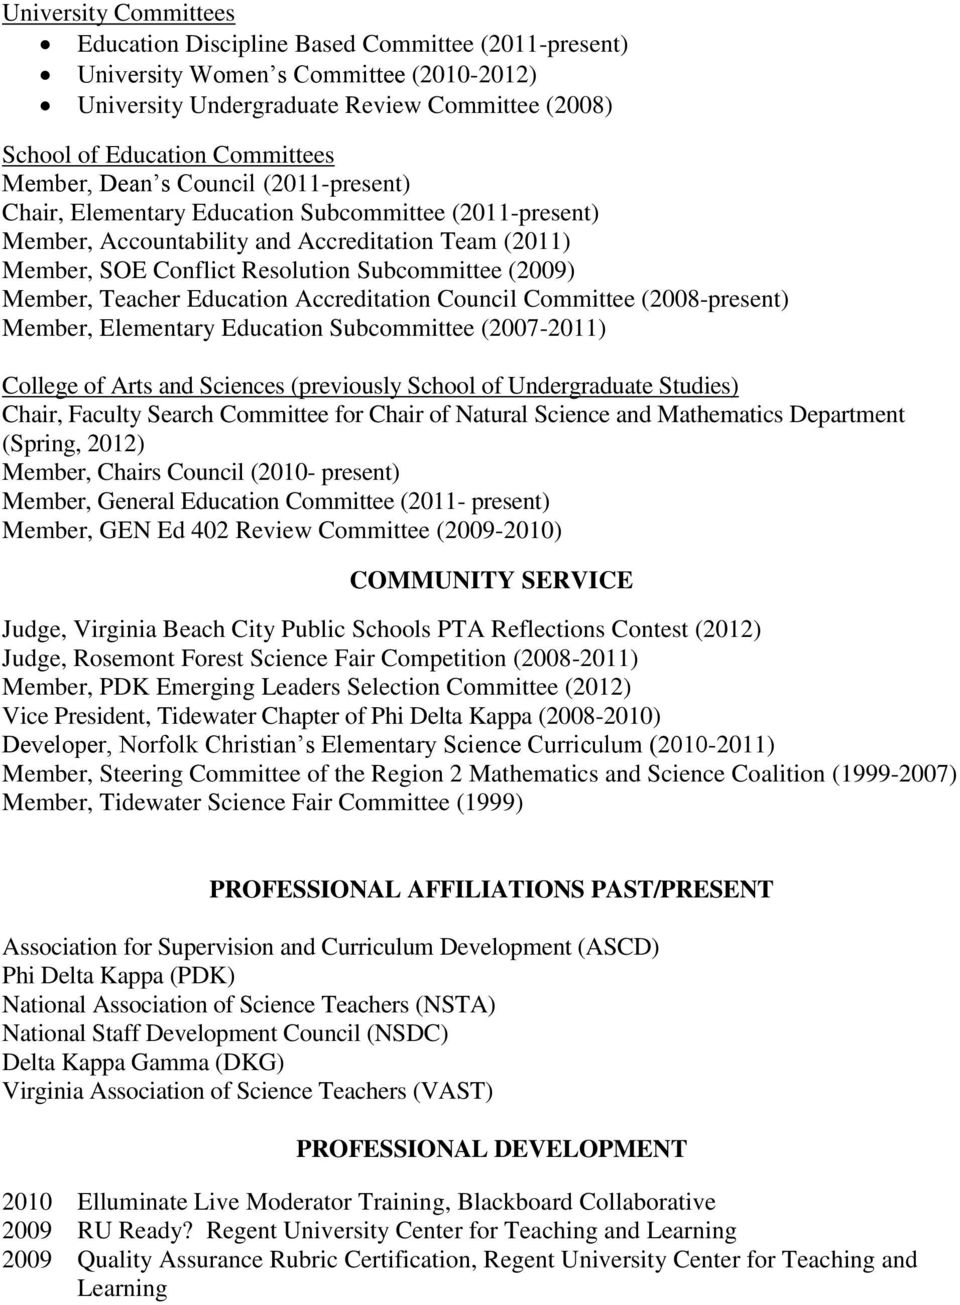 Member, Teacher Education Accreditation Council Committee (2008-present) Member, Elementary Education Subcommittee (2007-2011) College of Arts and Sciences (previously School of Undergraduate